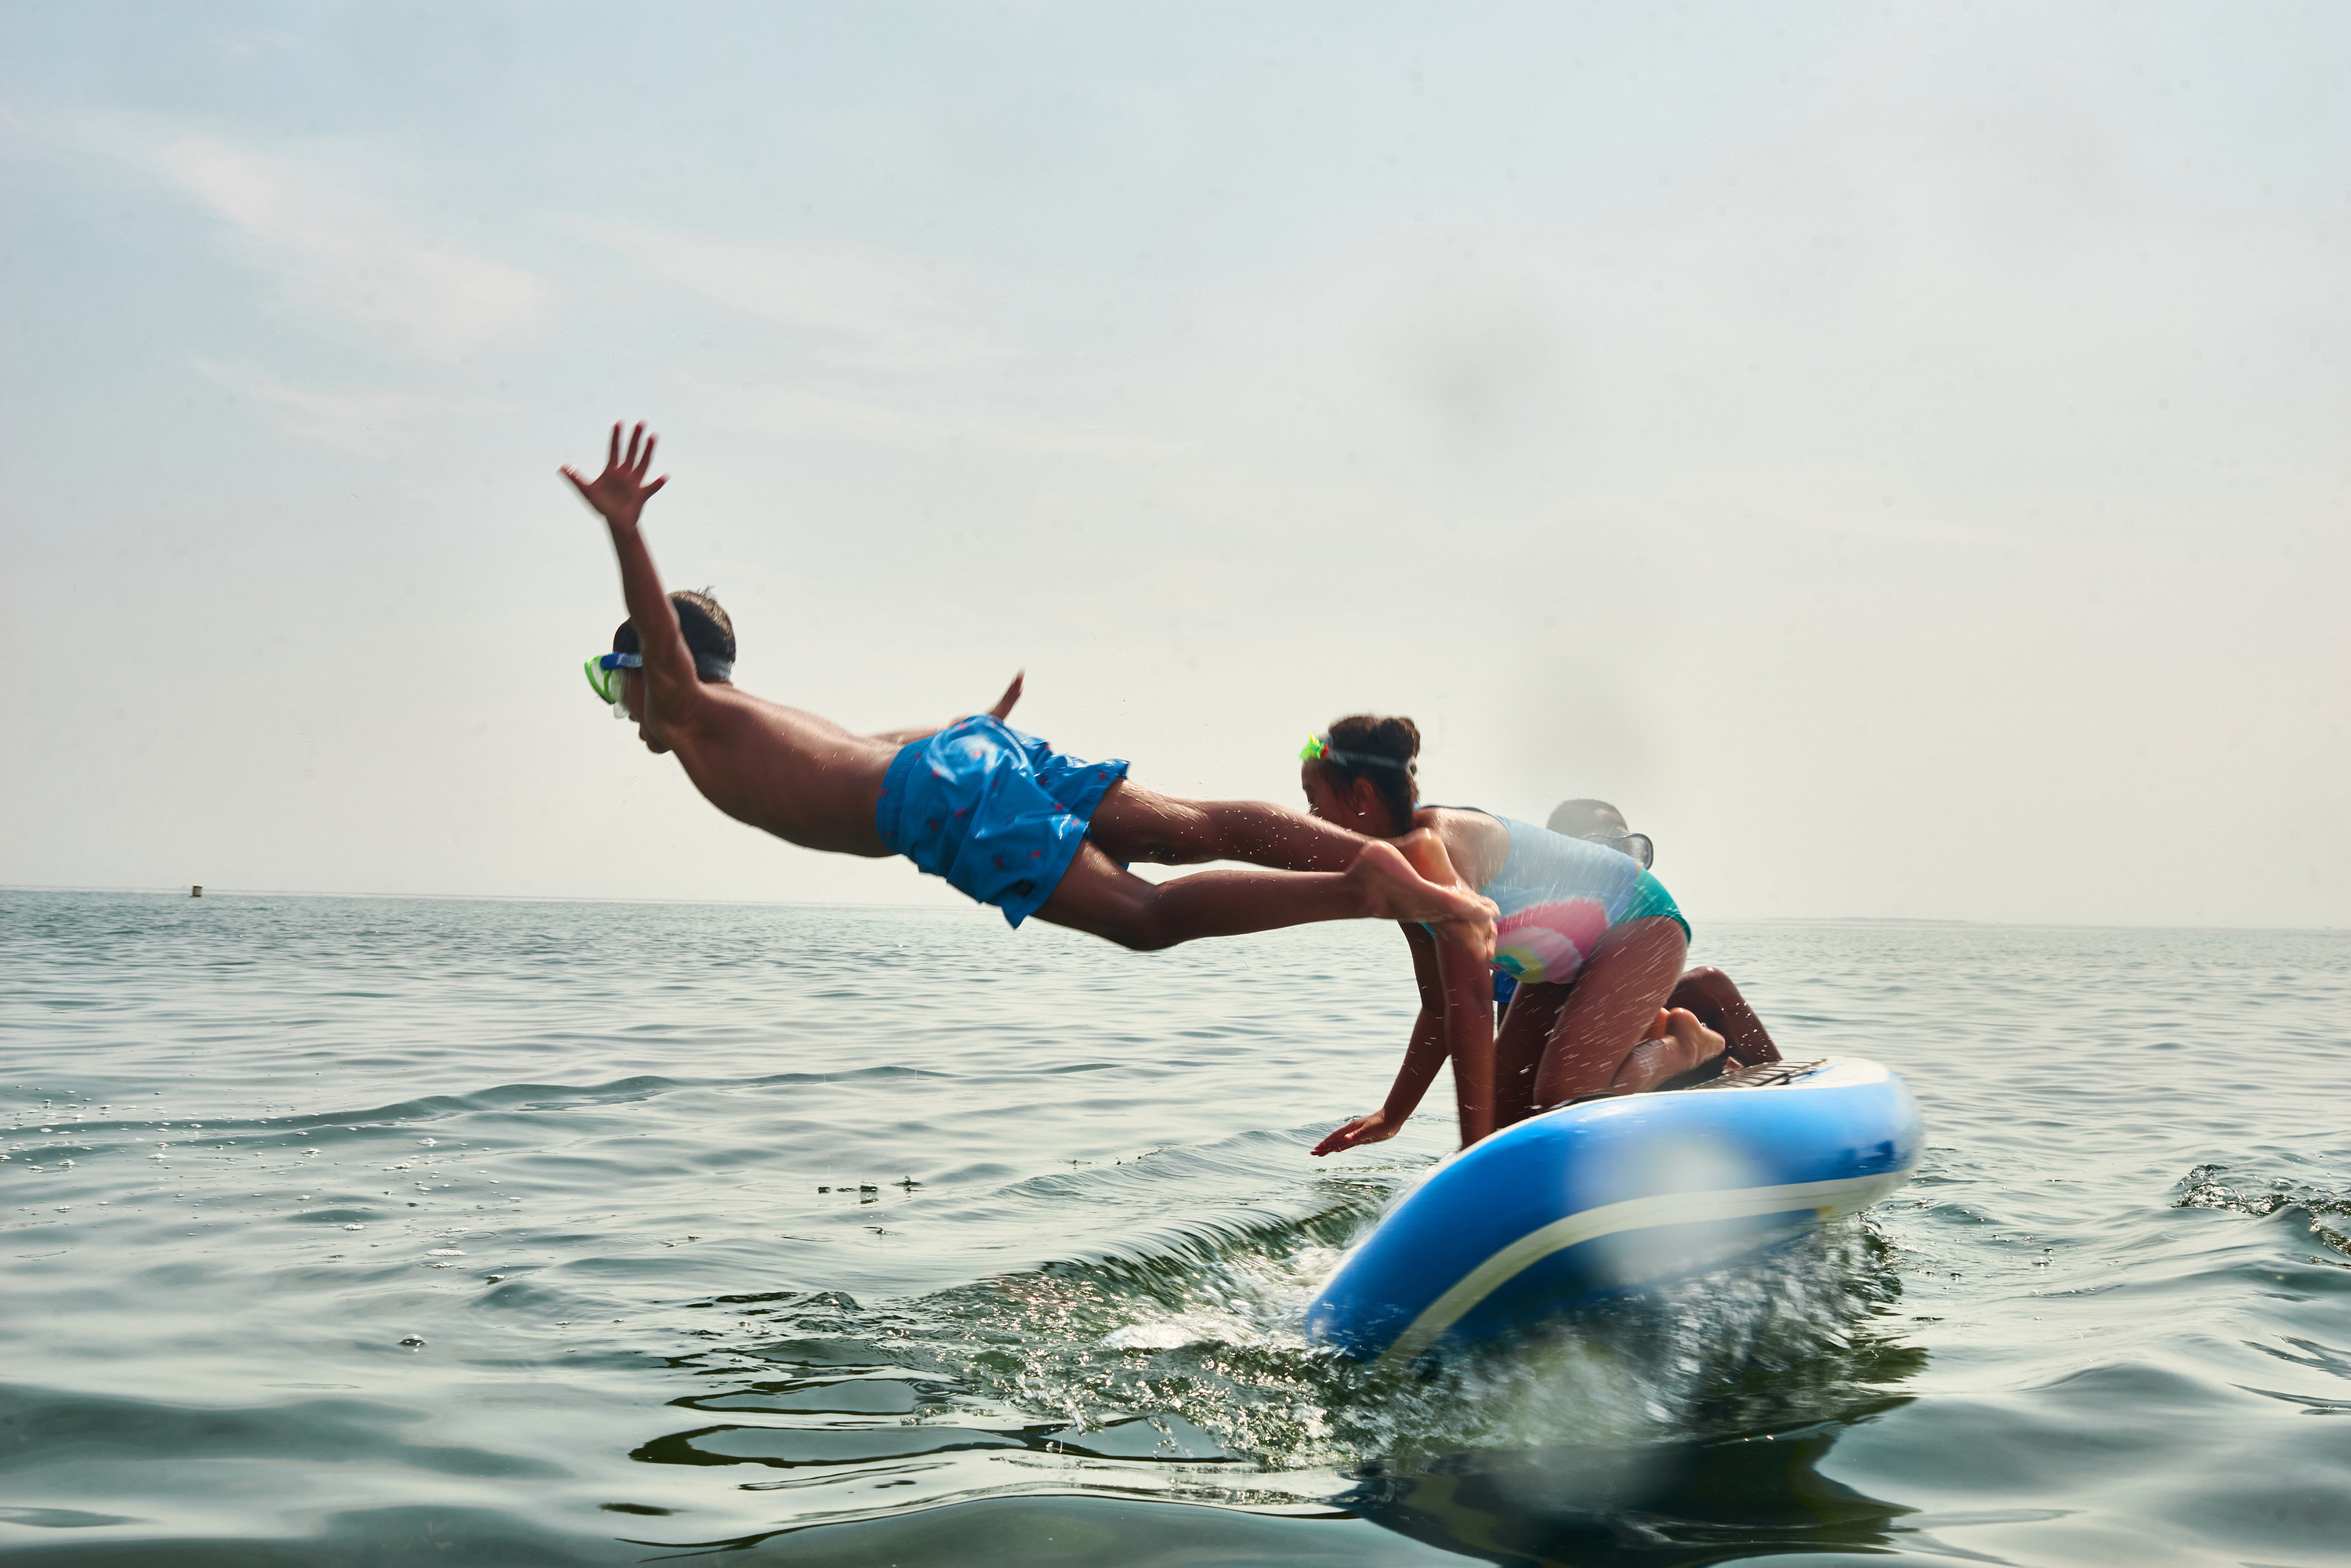 Children, one with goggles, prepare to jump into the water from a surfboard